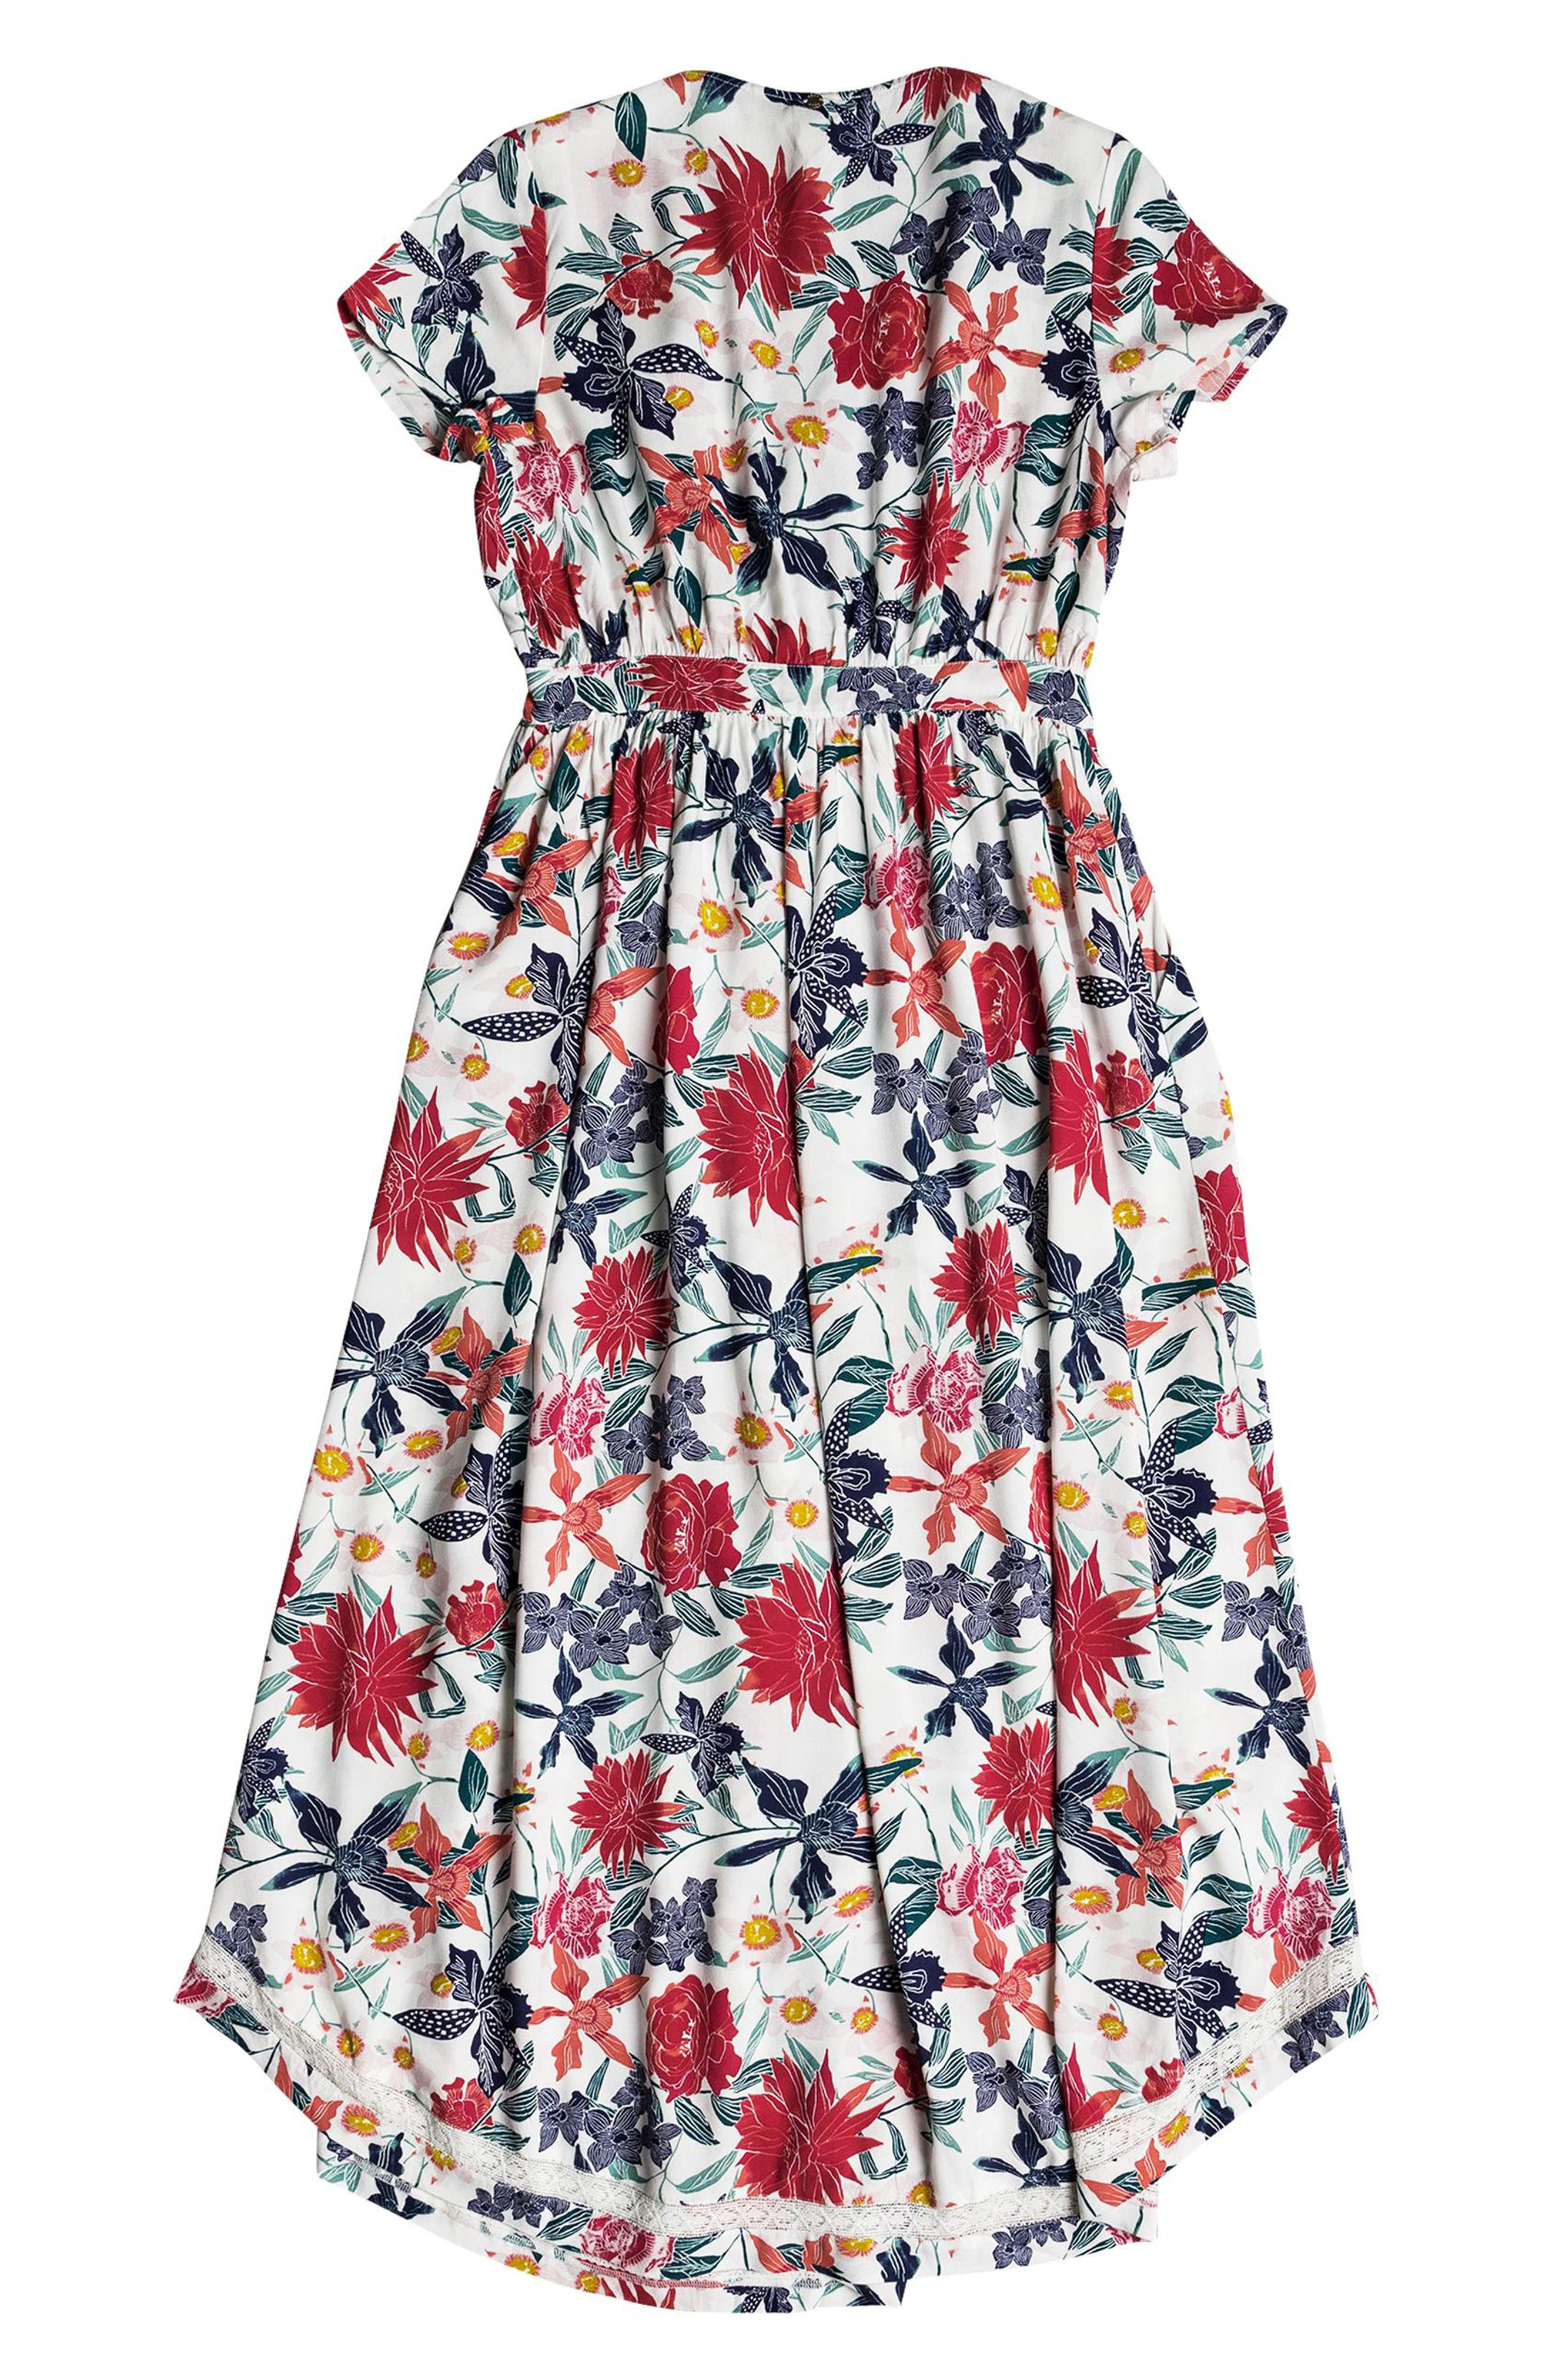 District Nights Floral Print Dress,                             Alternate thumbnail 9, color,                             MARSHMALLOW TALLOWS